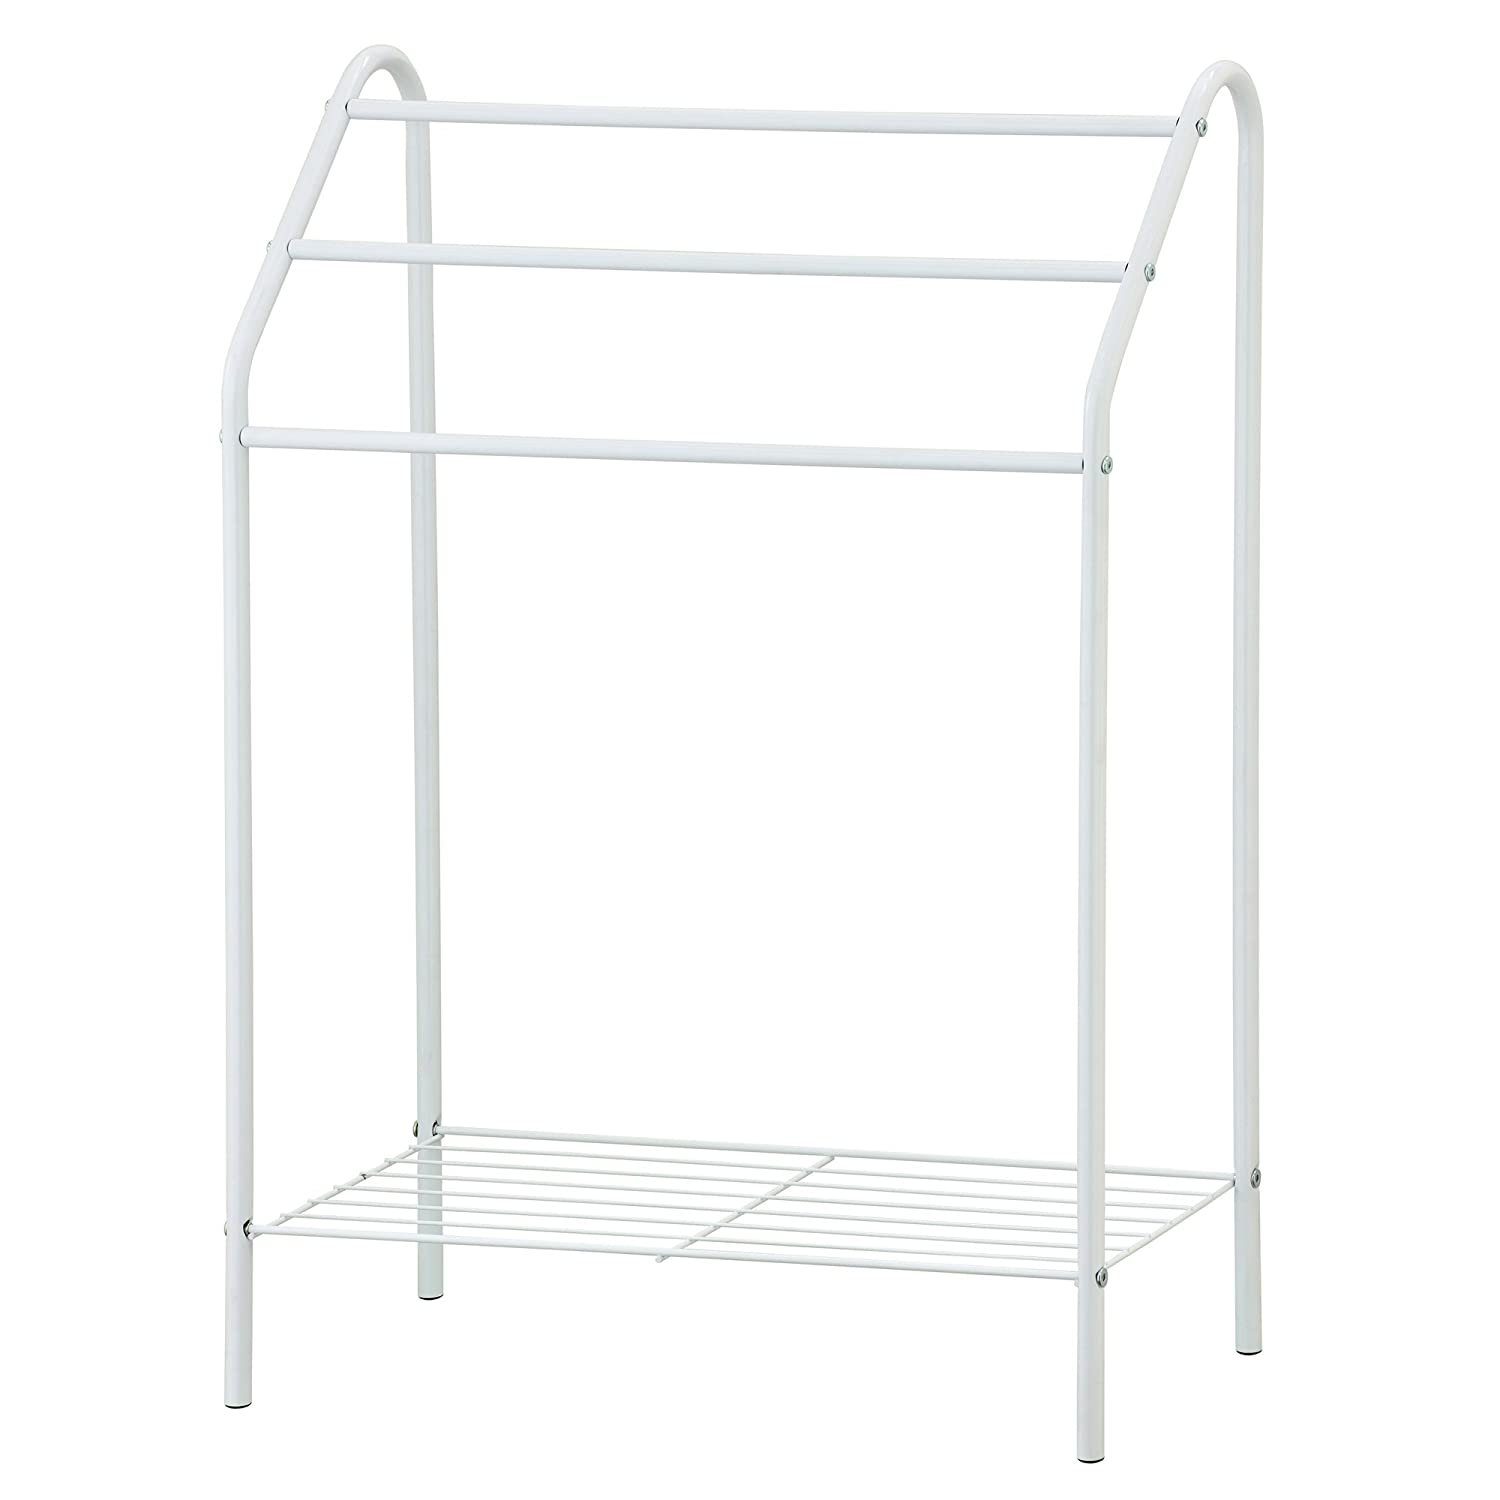 Furinno WS17015 Wayar 3-Tier Towel Stand, Chrome B0768MY8YZ